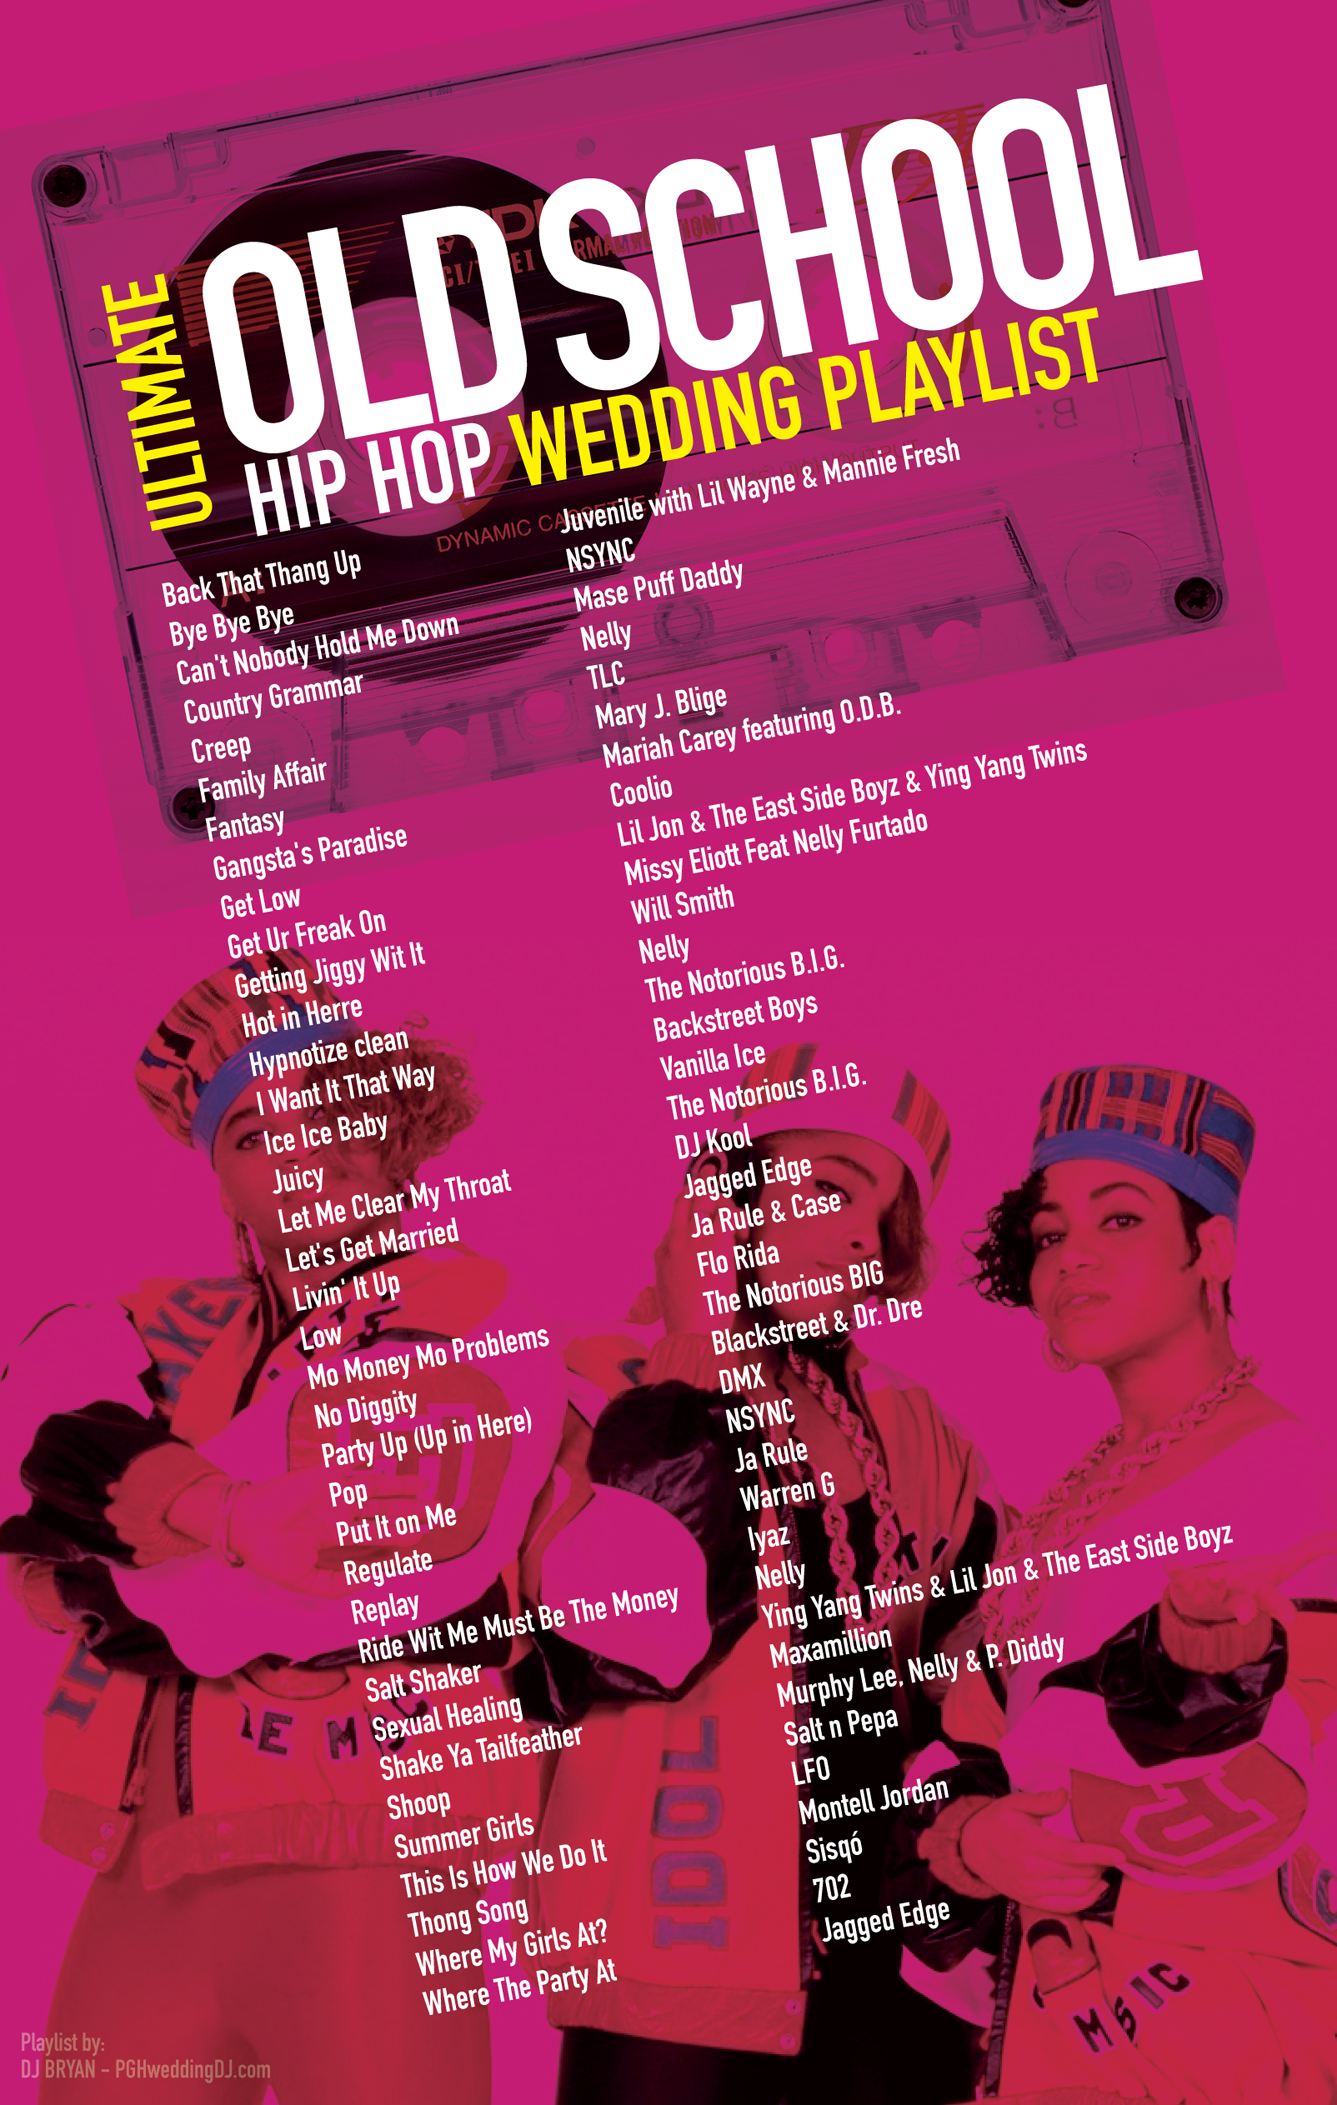 Old School Hip Hop Wedding Playlist most requested 90's